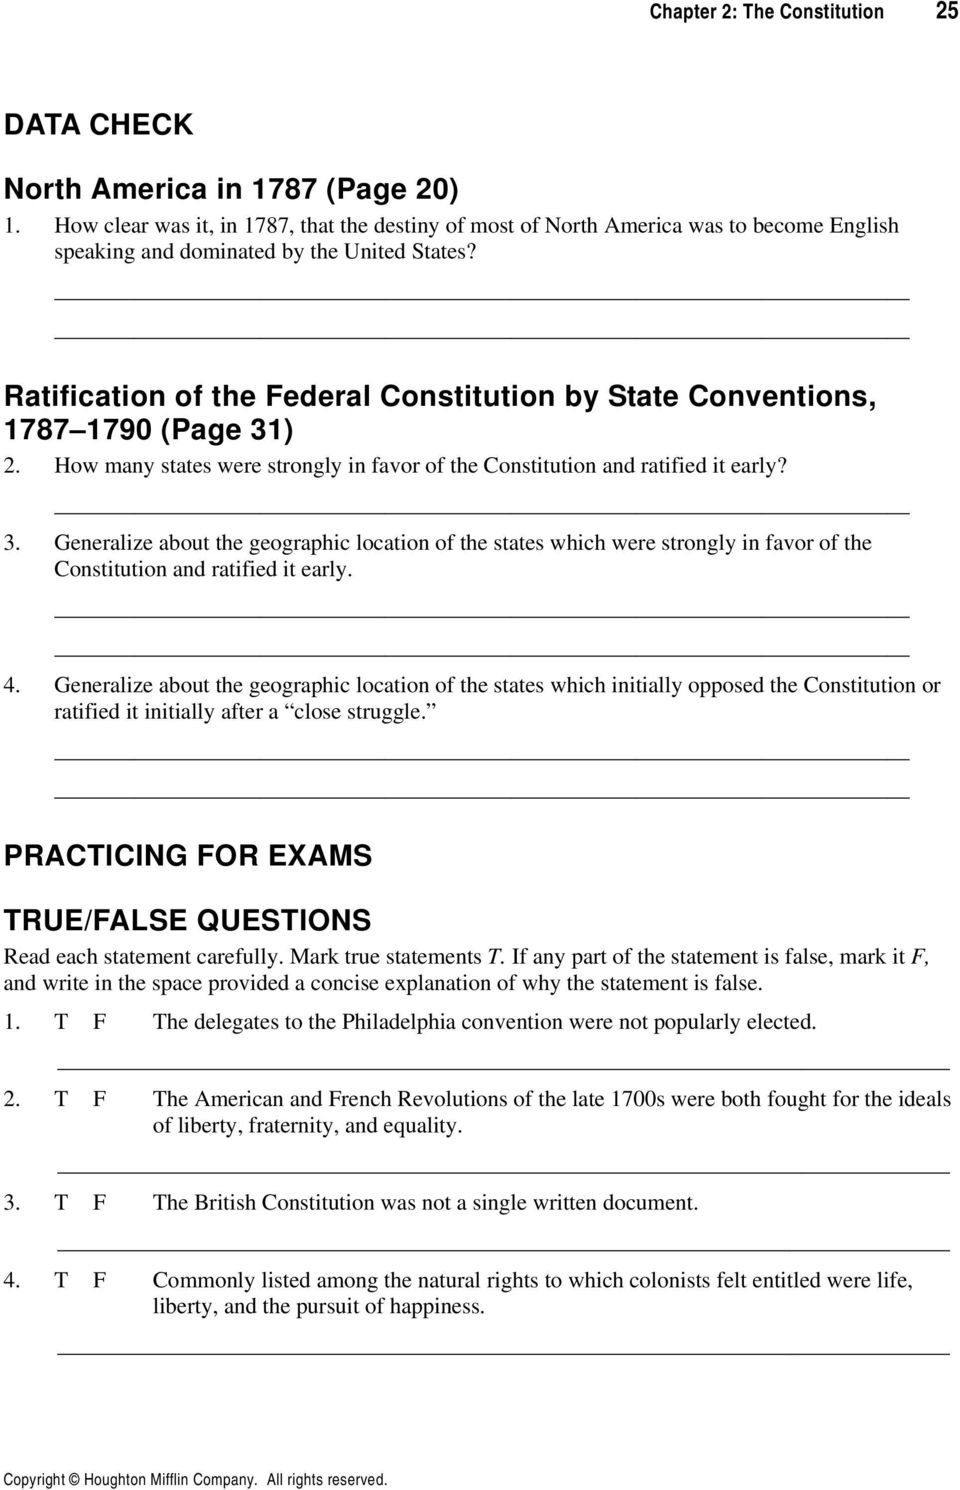 The Constitution Chapter 2 Reviewing The Chapter Chapter Focus Pdf